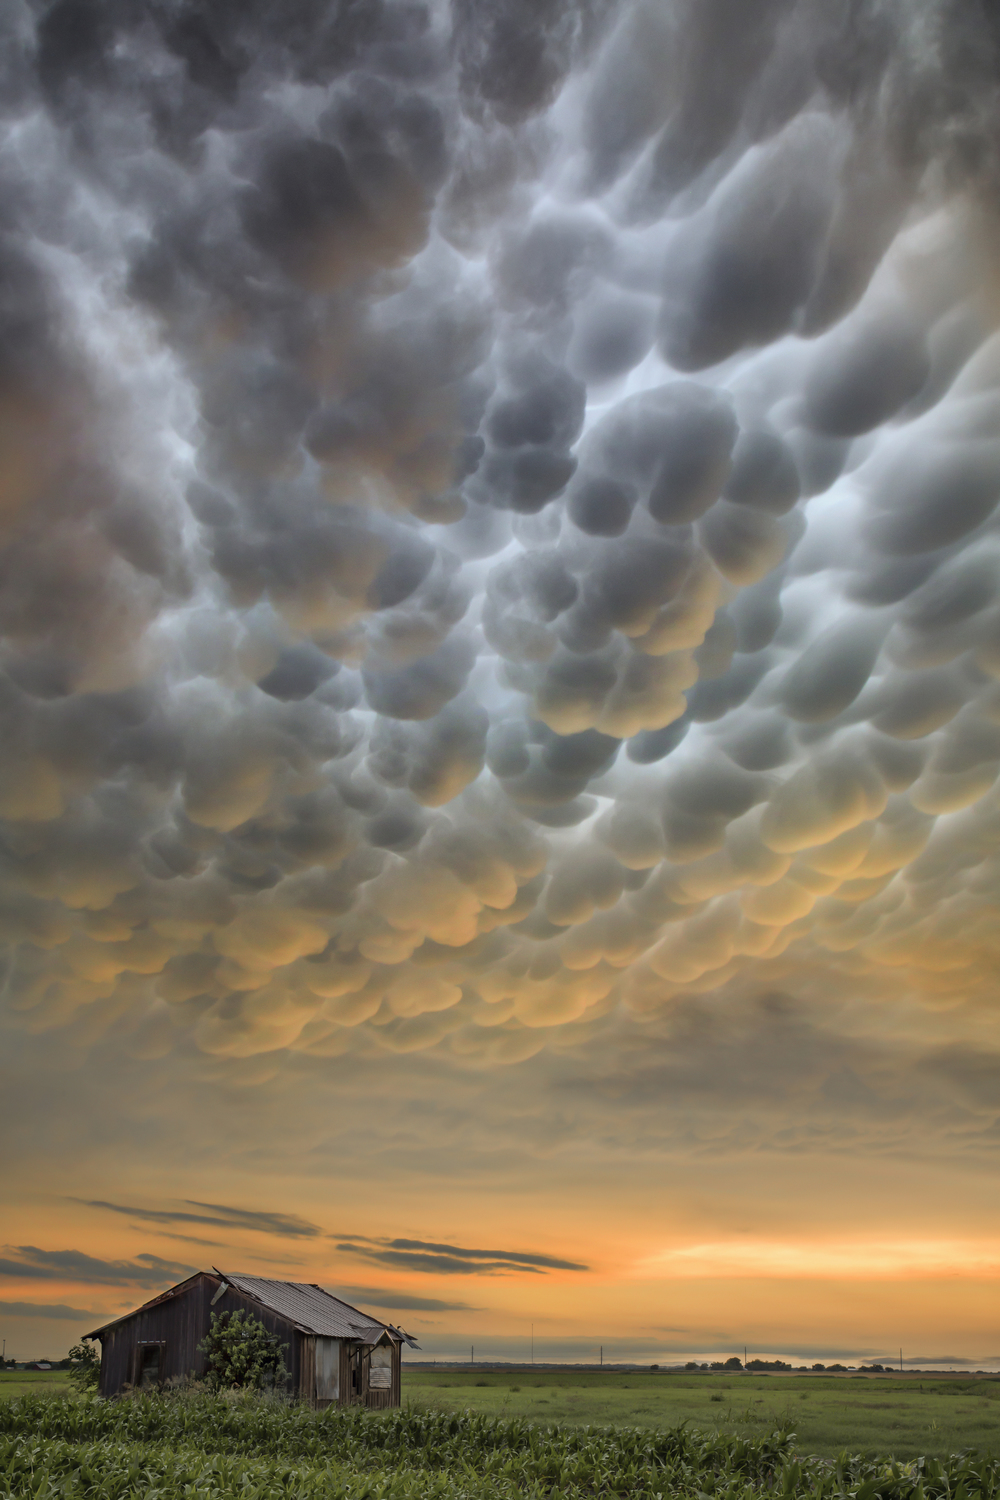 Mammatus clouds over Jonah, Texas after training tornadic supercells caused devastating flooding across the area.